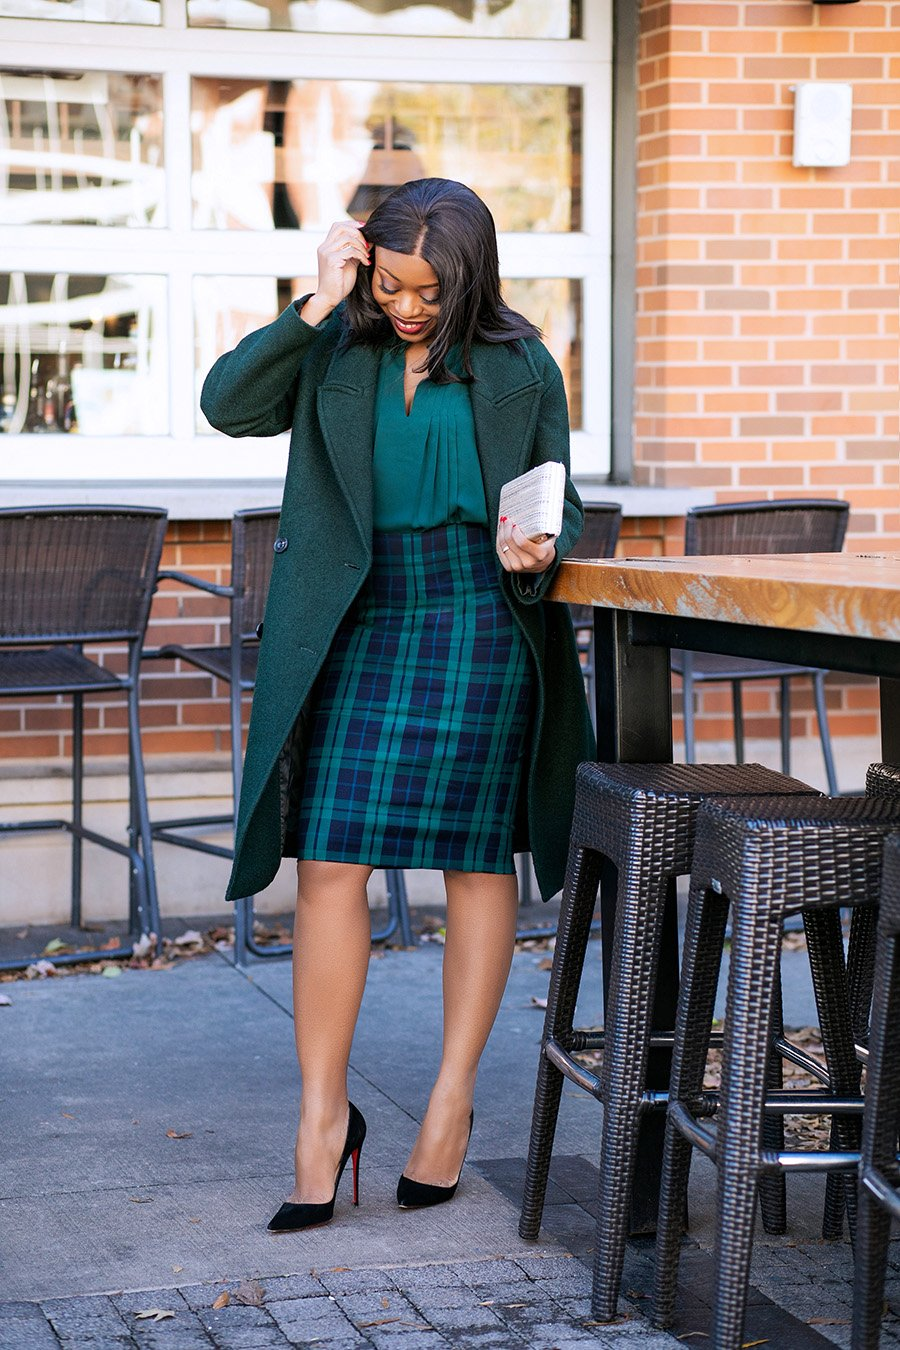 stella-adewunmi-shares-holiday-outfits-for-every-occasion-in-plaid